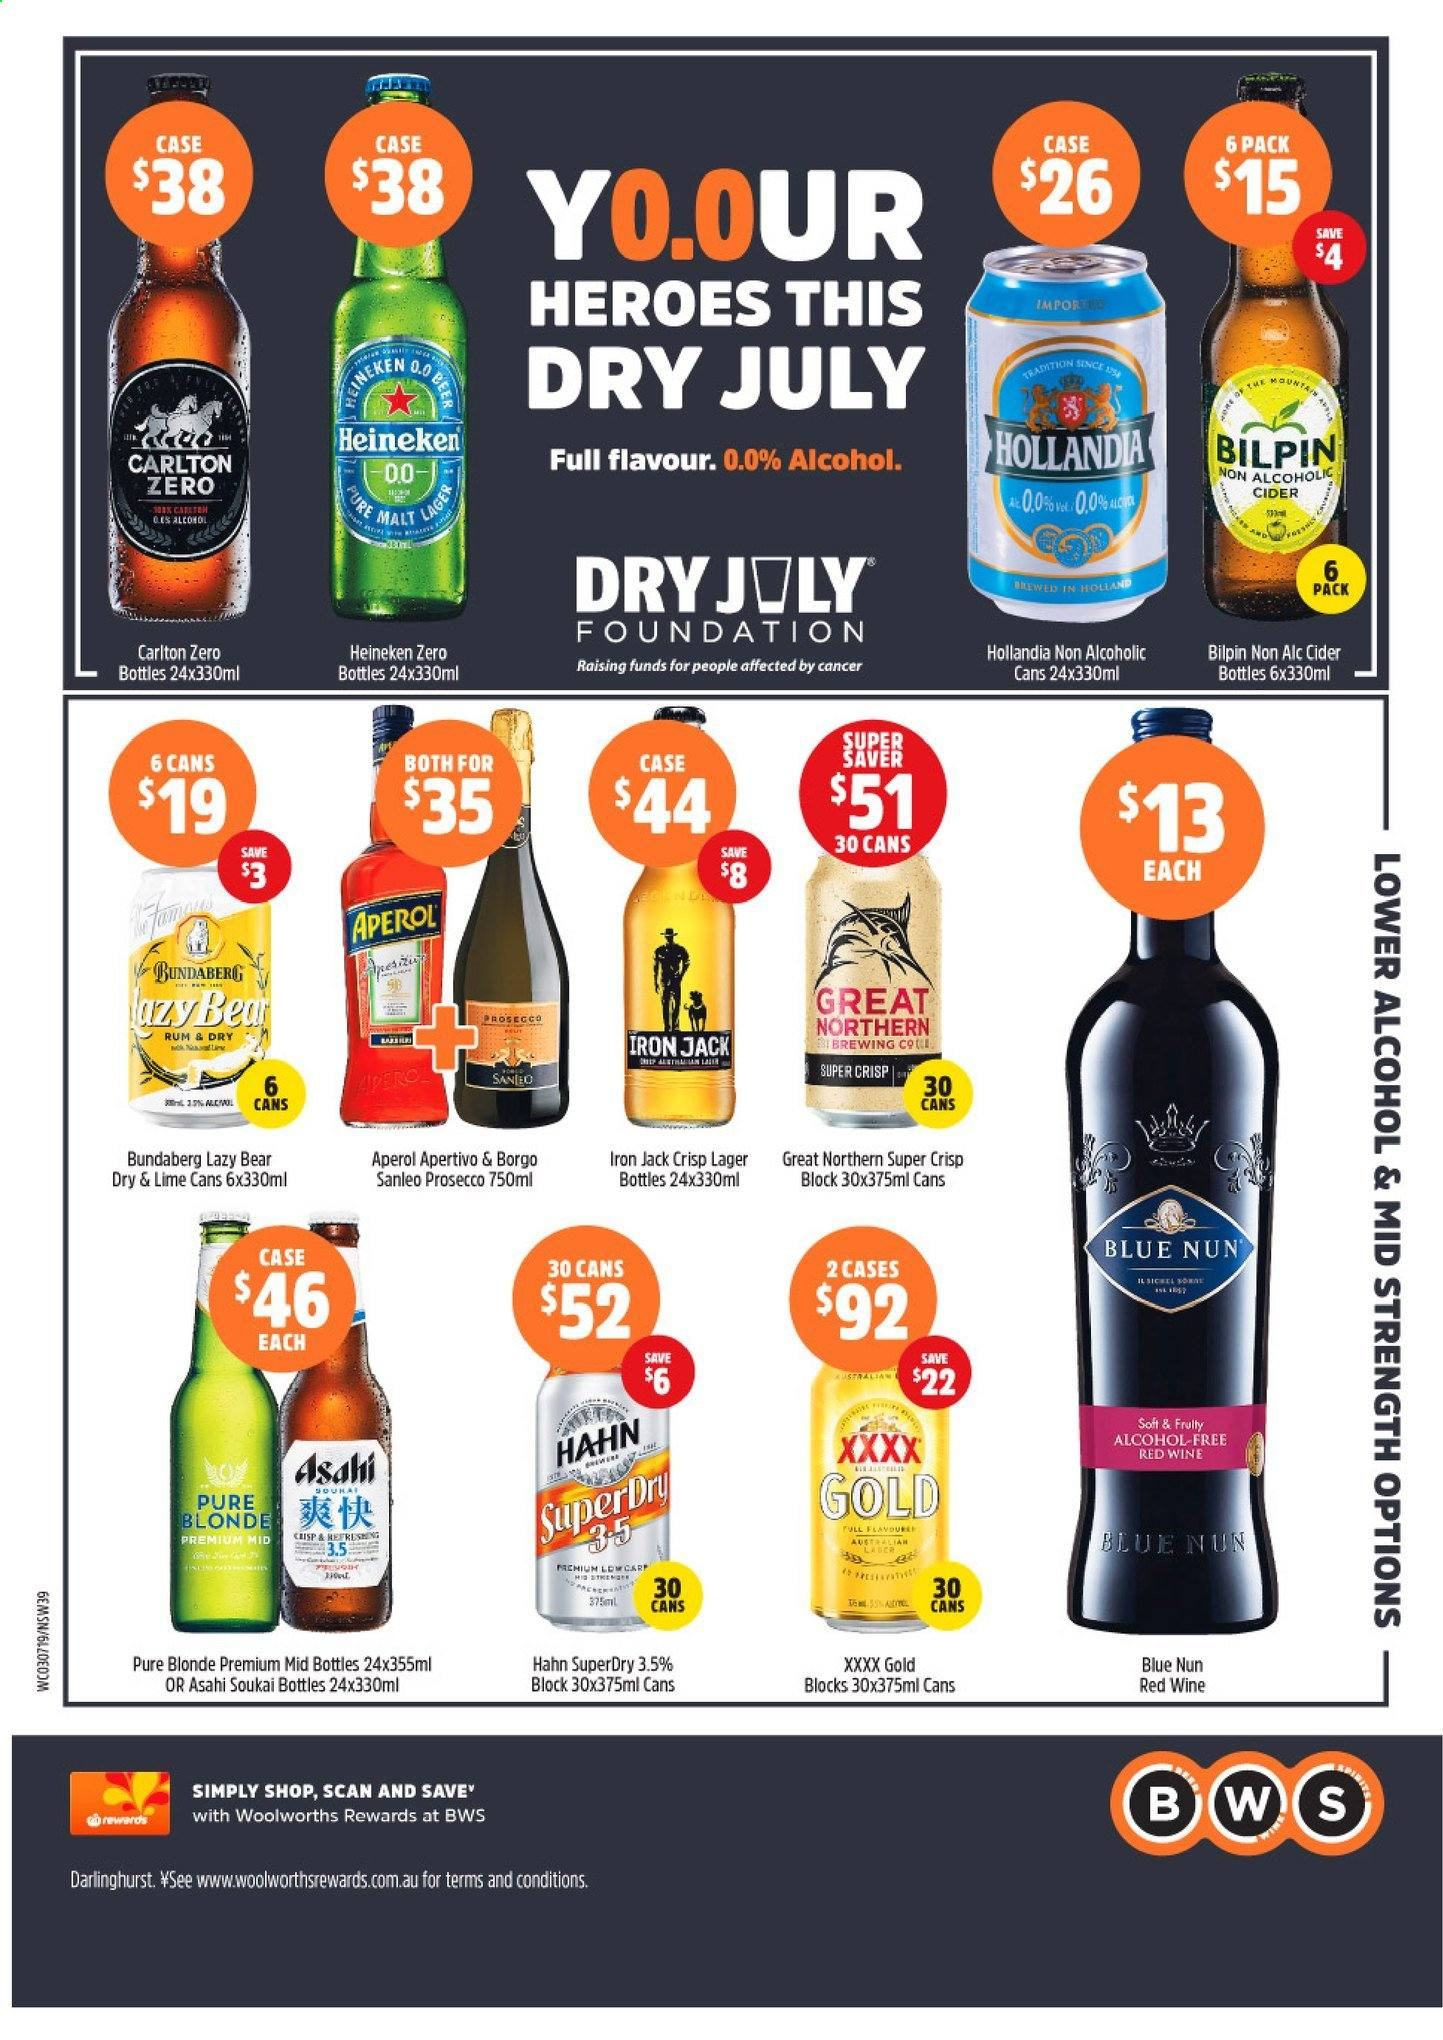 BWS catalogue and weekly specials 3 7 2019 - 9 7 2019 | Au